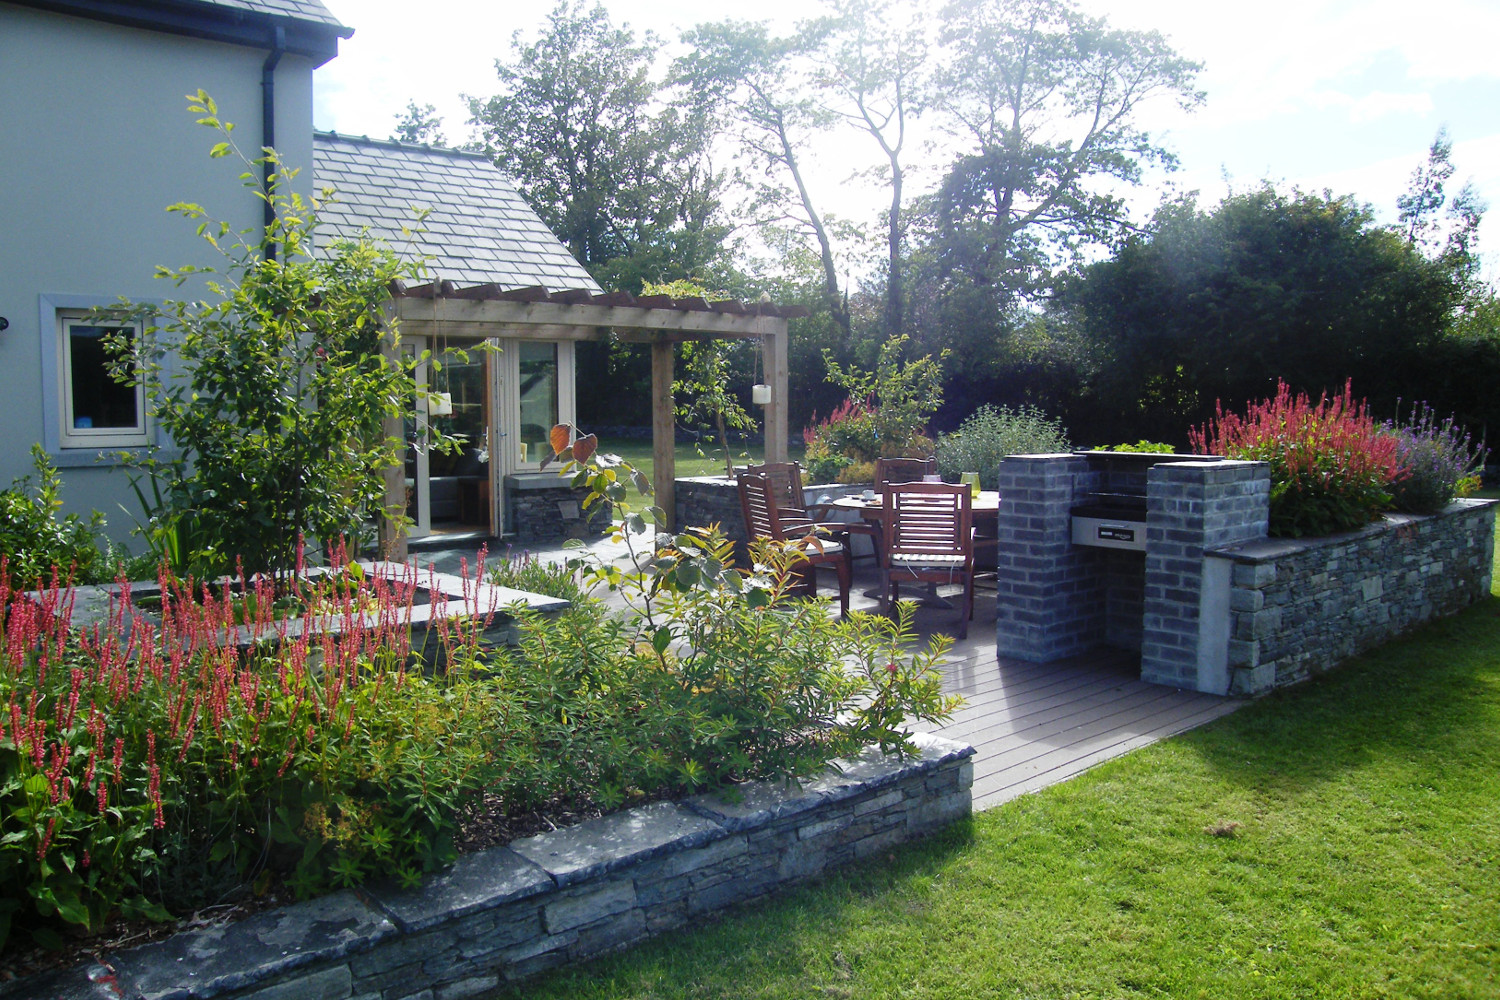 tim austen garden design stylish back garden killarney - Garden Design Kerry